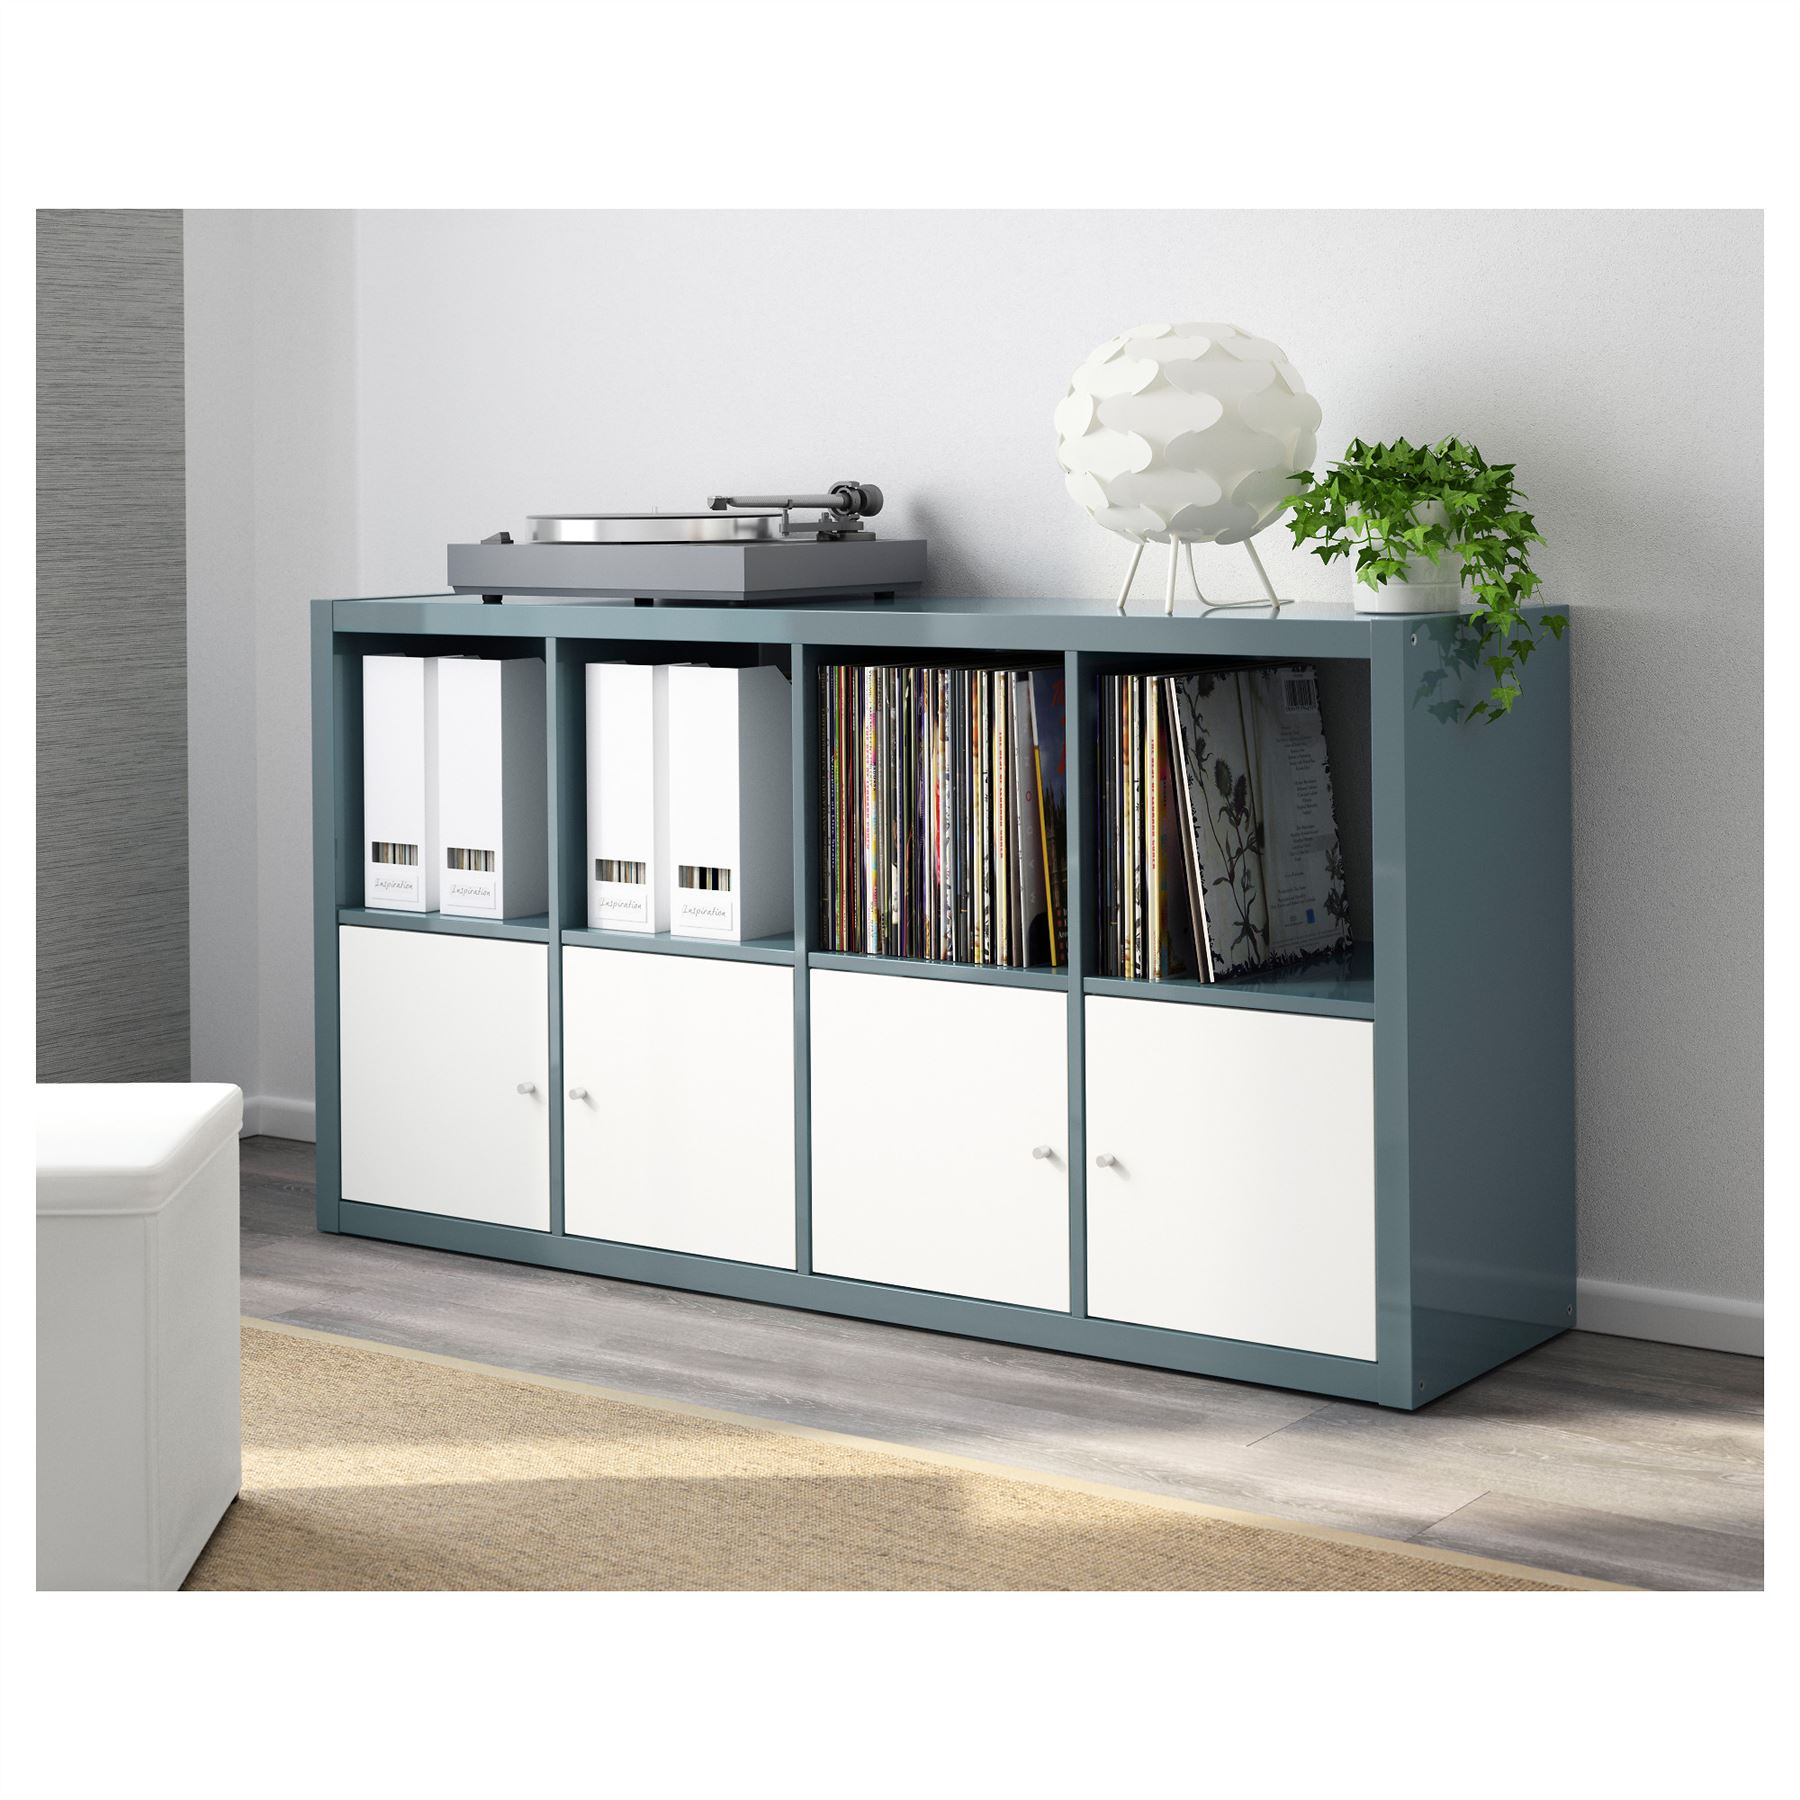 ikea kallax 8 cube storage bookcase rectangle shelving unit various colours ebay. Black Bedroom Furniture Sets. Home Design Ideas